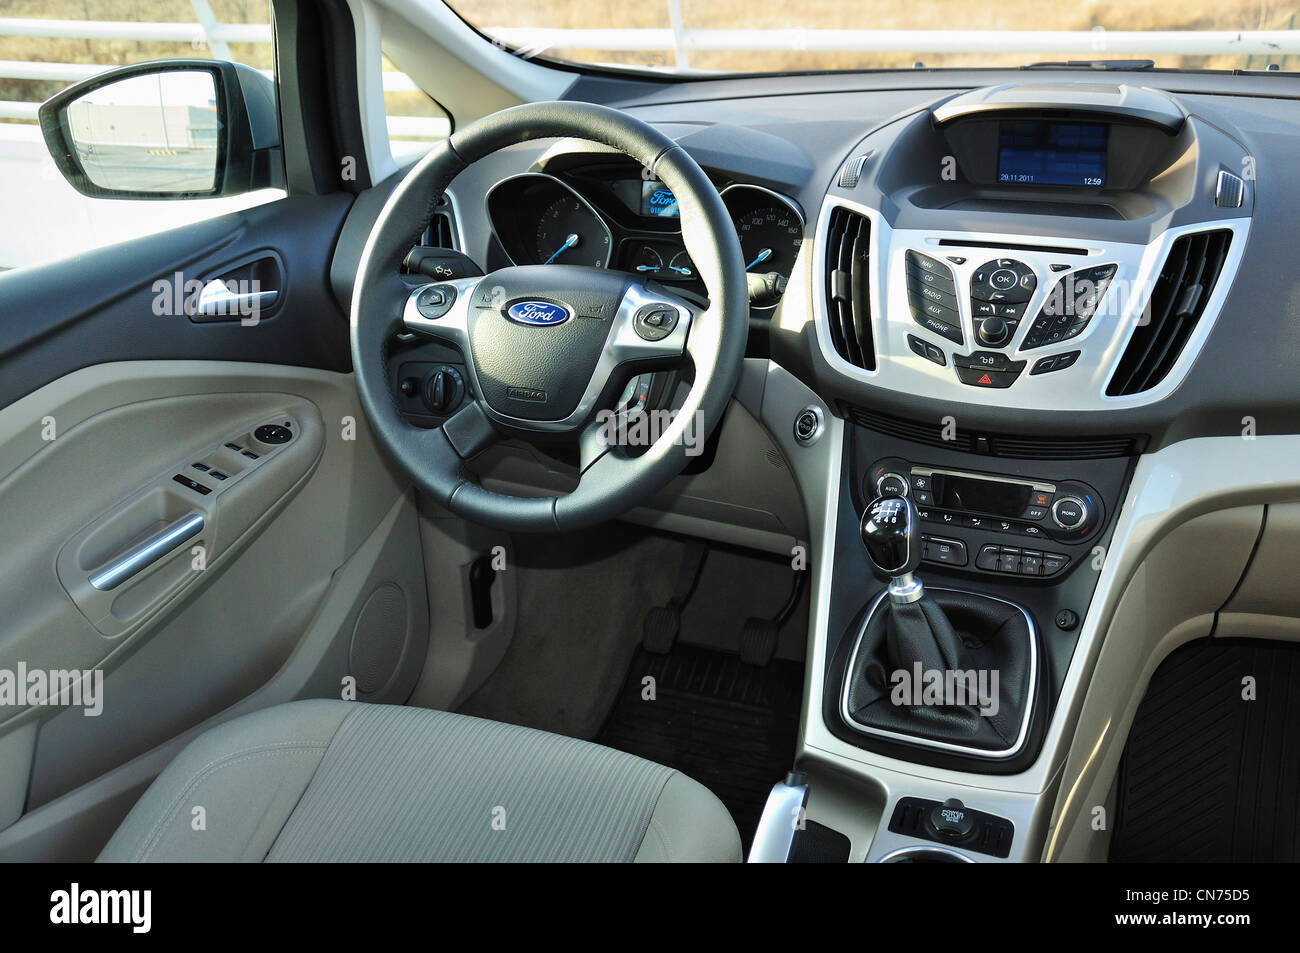 Ford Ford Grand C Max Stock Photos & Ford Ford Grand C Max Stock ...